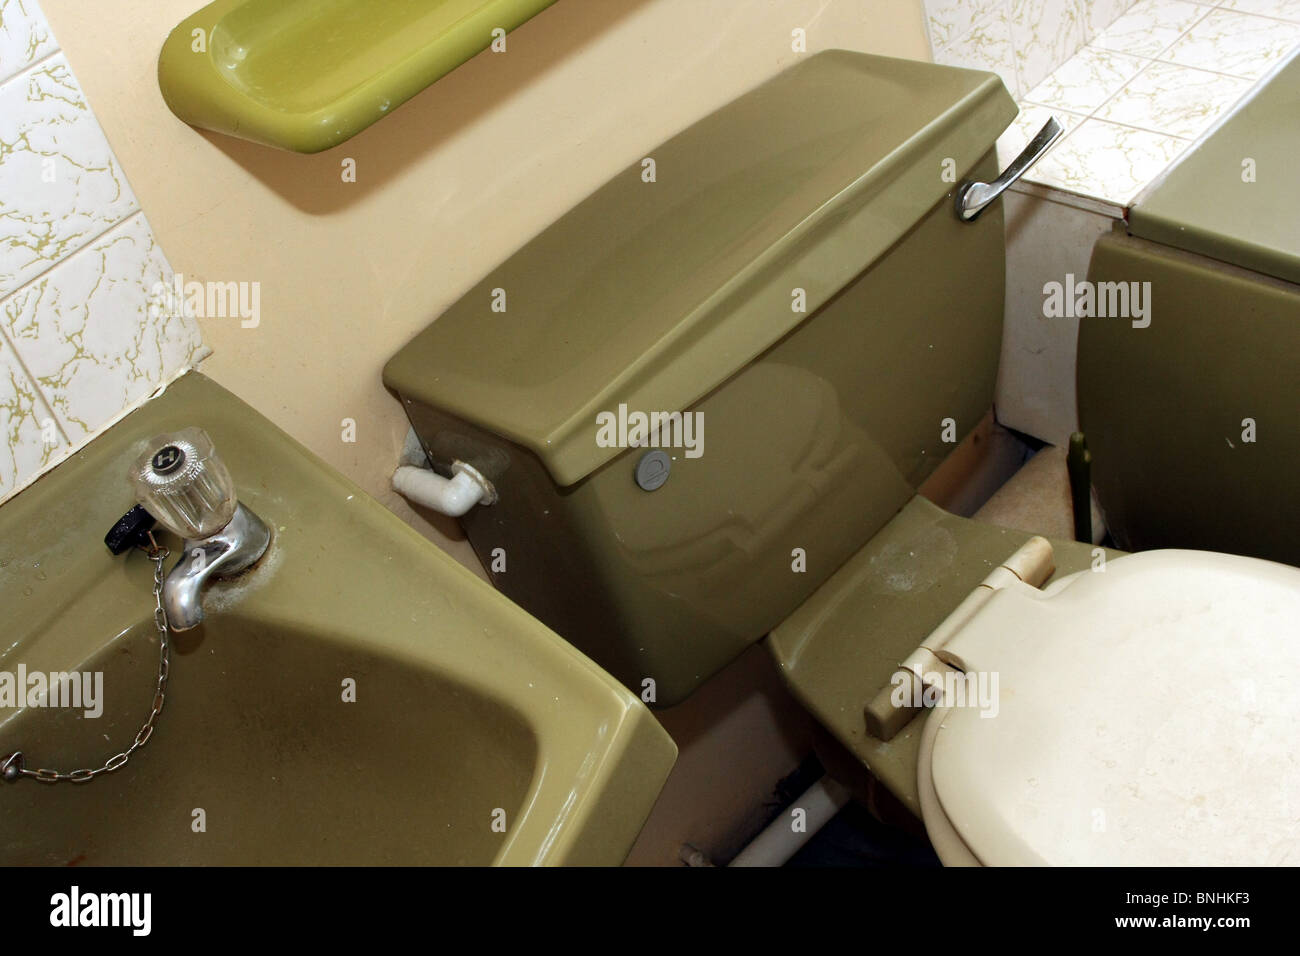 Avocado Bathroom Suite Avocado 1970 Bathroom Suite In A Typical British Home Built In The